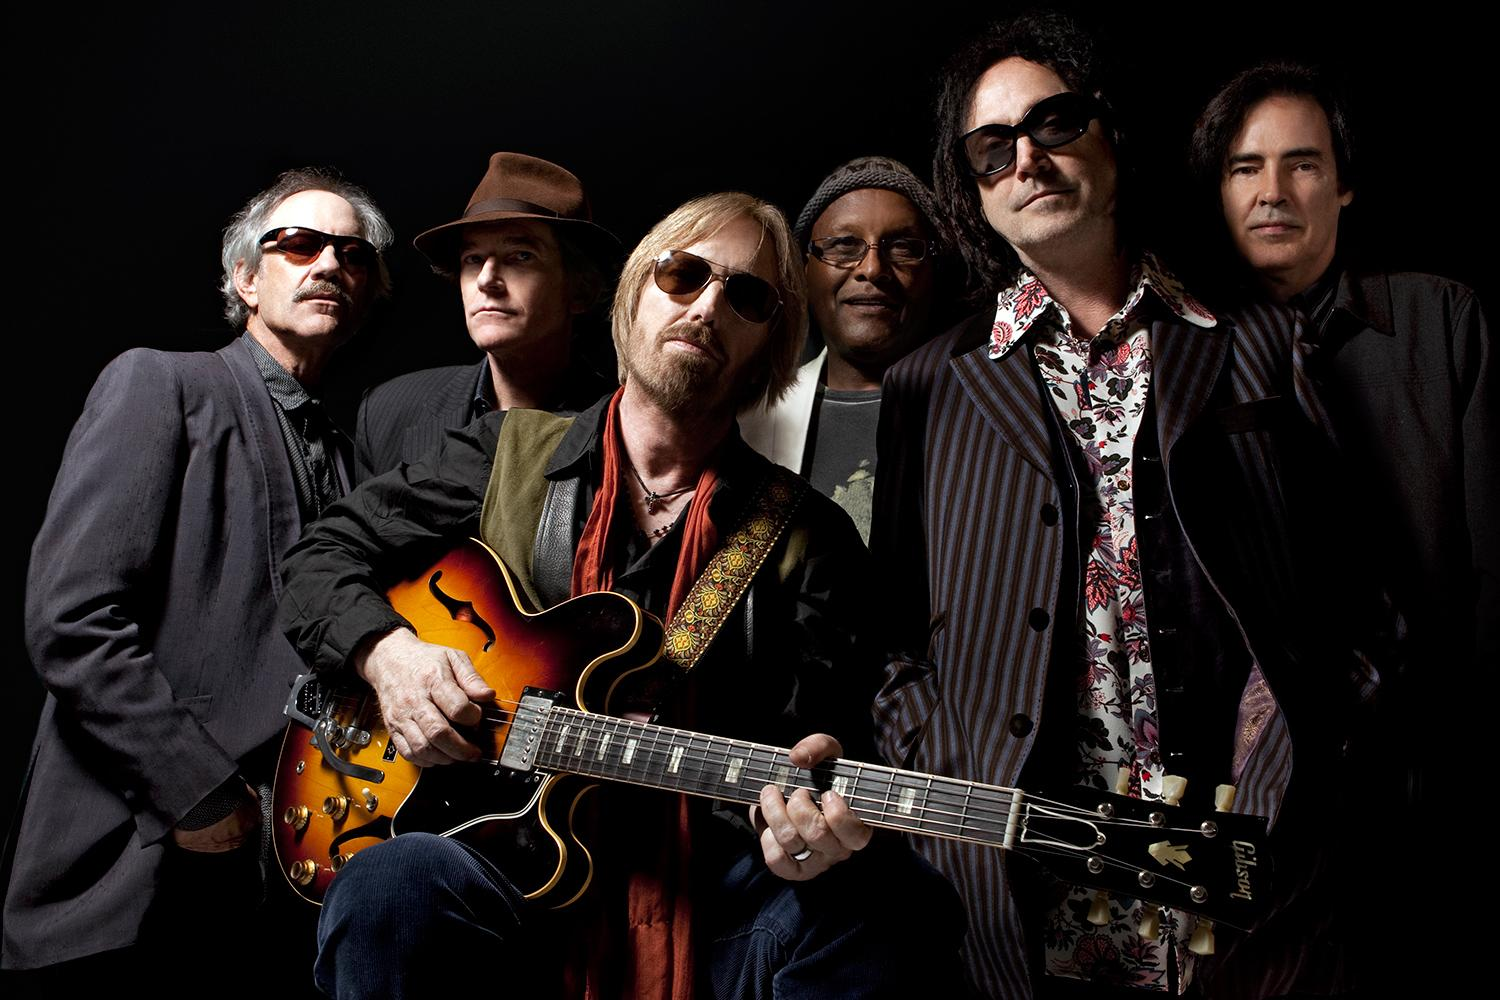 Interview Tom Petty And The Heartbreakers Producer On